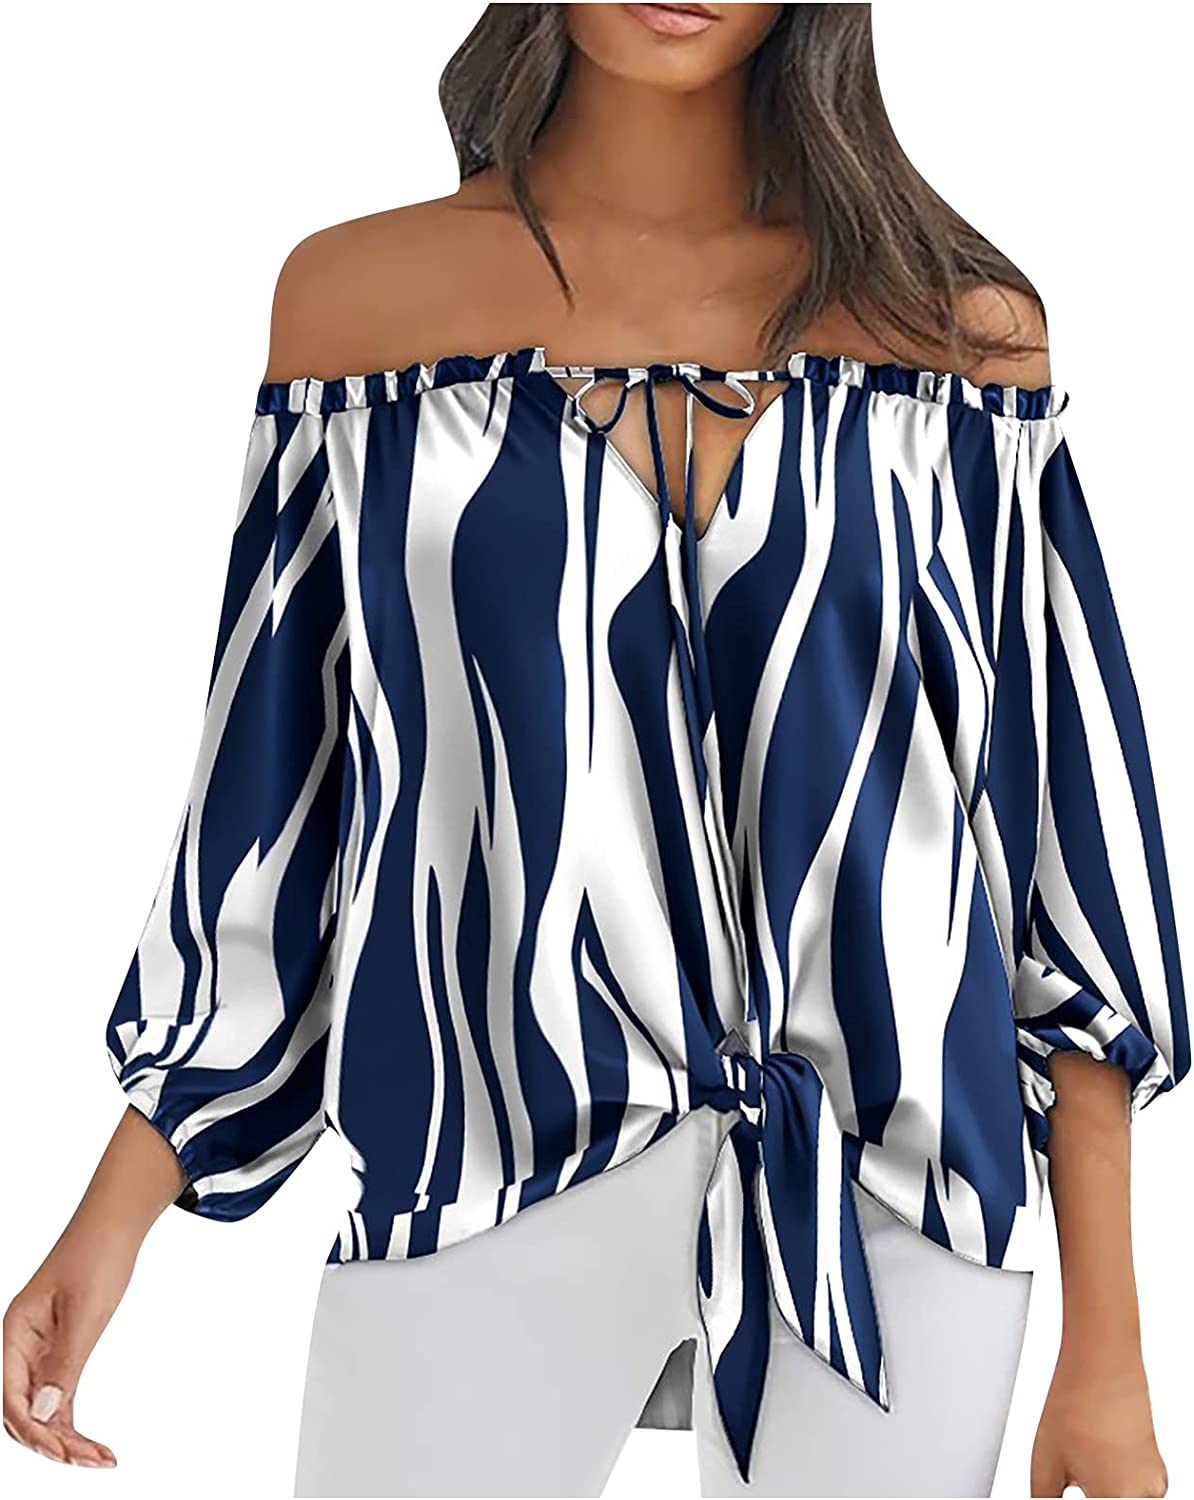 MEIbibibi Tie Knot Blouse for Women V-Neck T-S Year-end gift San Antonio Mall Shoulder Off Deep